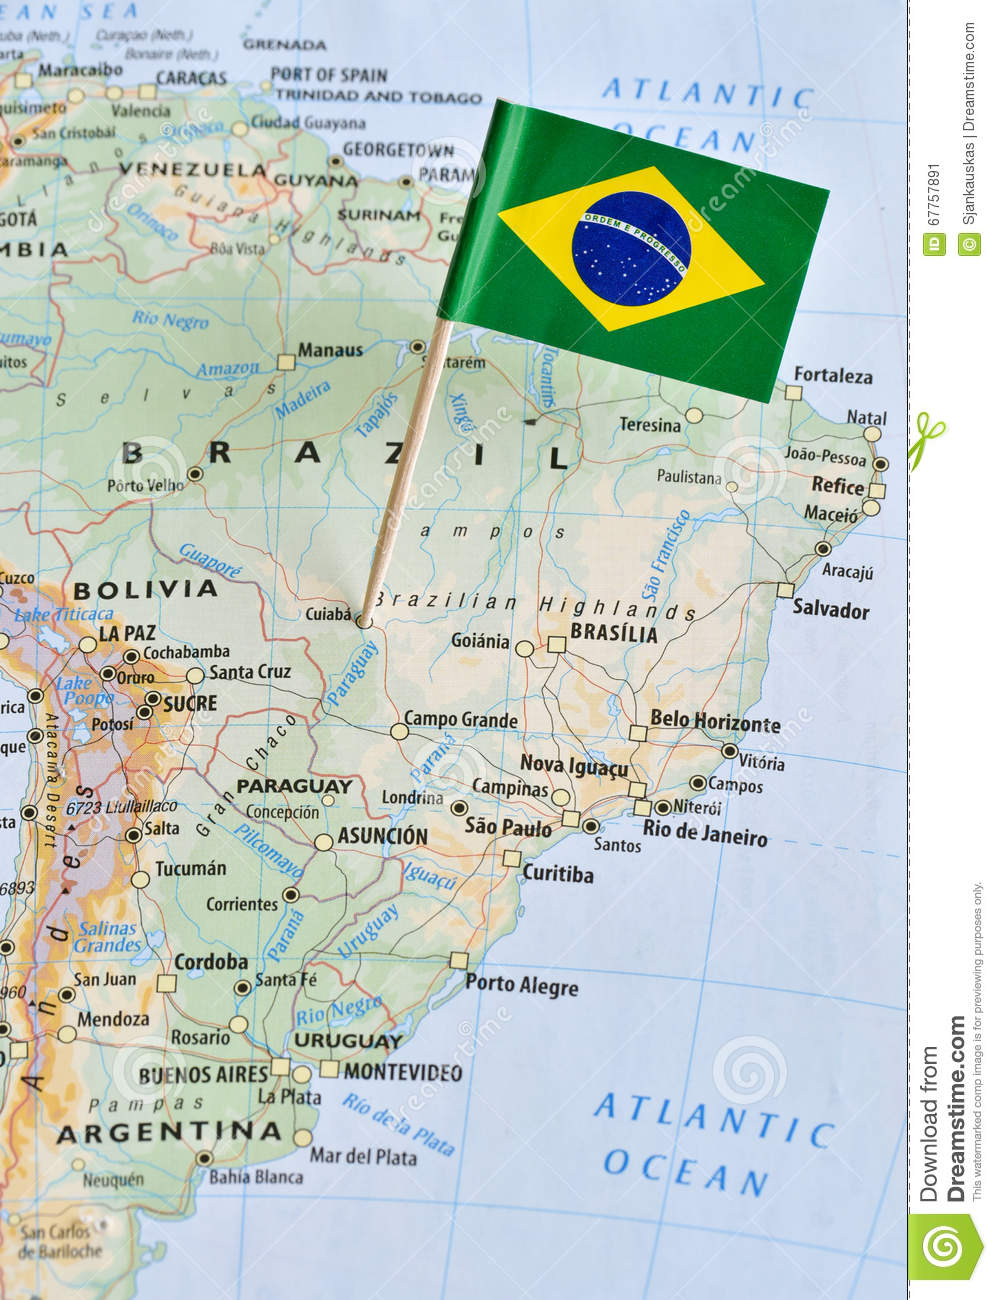 Brazil Flag Pin On Map Stock Image Image Of Capital - Campinas map